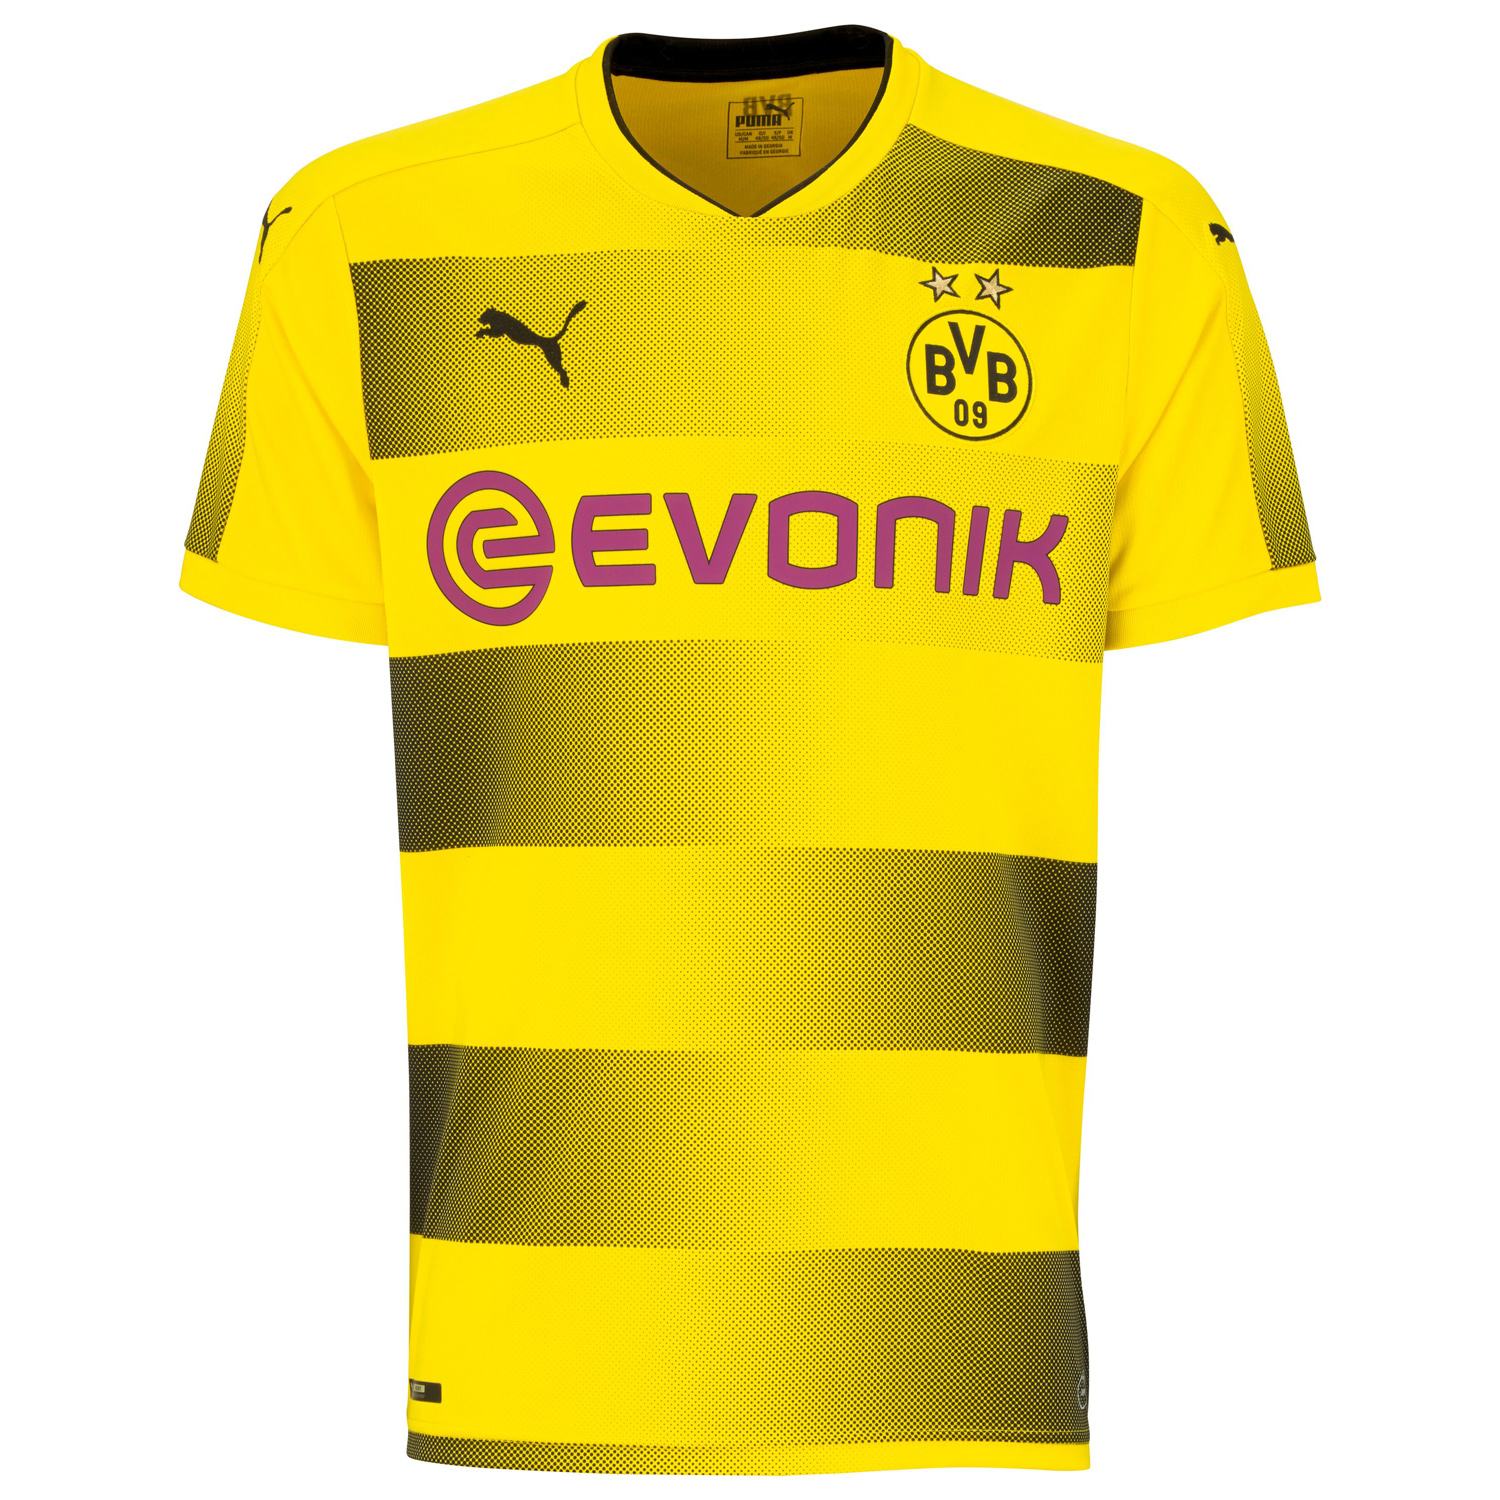 puma bvb borussia dortmund herren promo heimtrikot 17 18. Black Bedroom Furniture Sets. Home Design Ideas